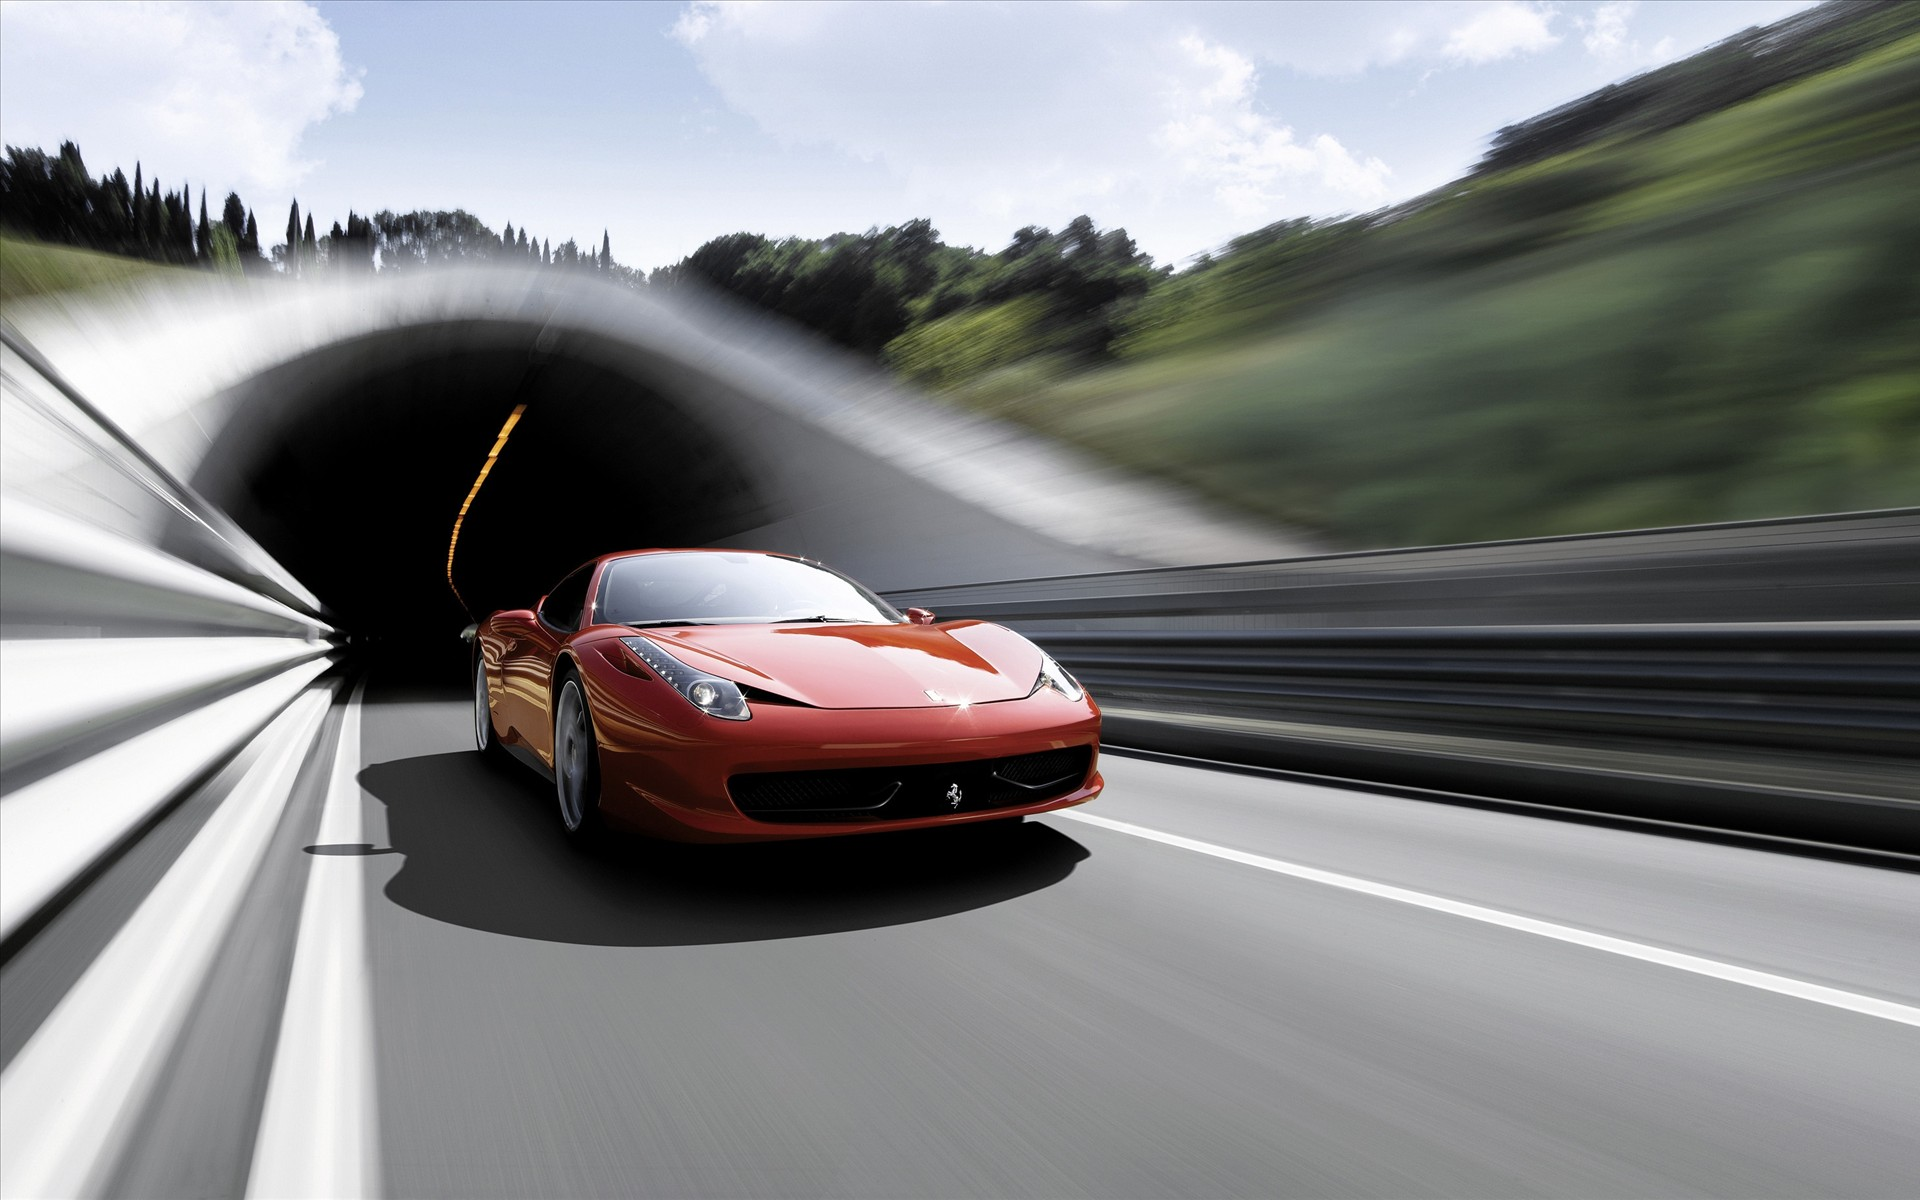 Ferrari 458 Italia Supercar 4 Wallpapers | HD Wallpapers